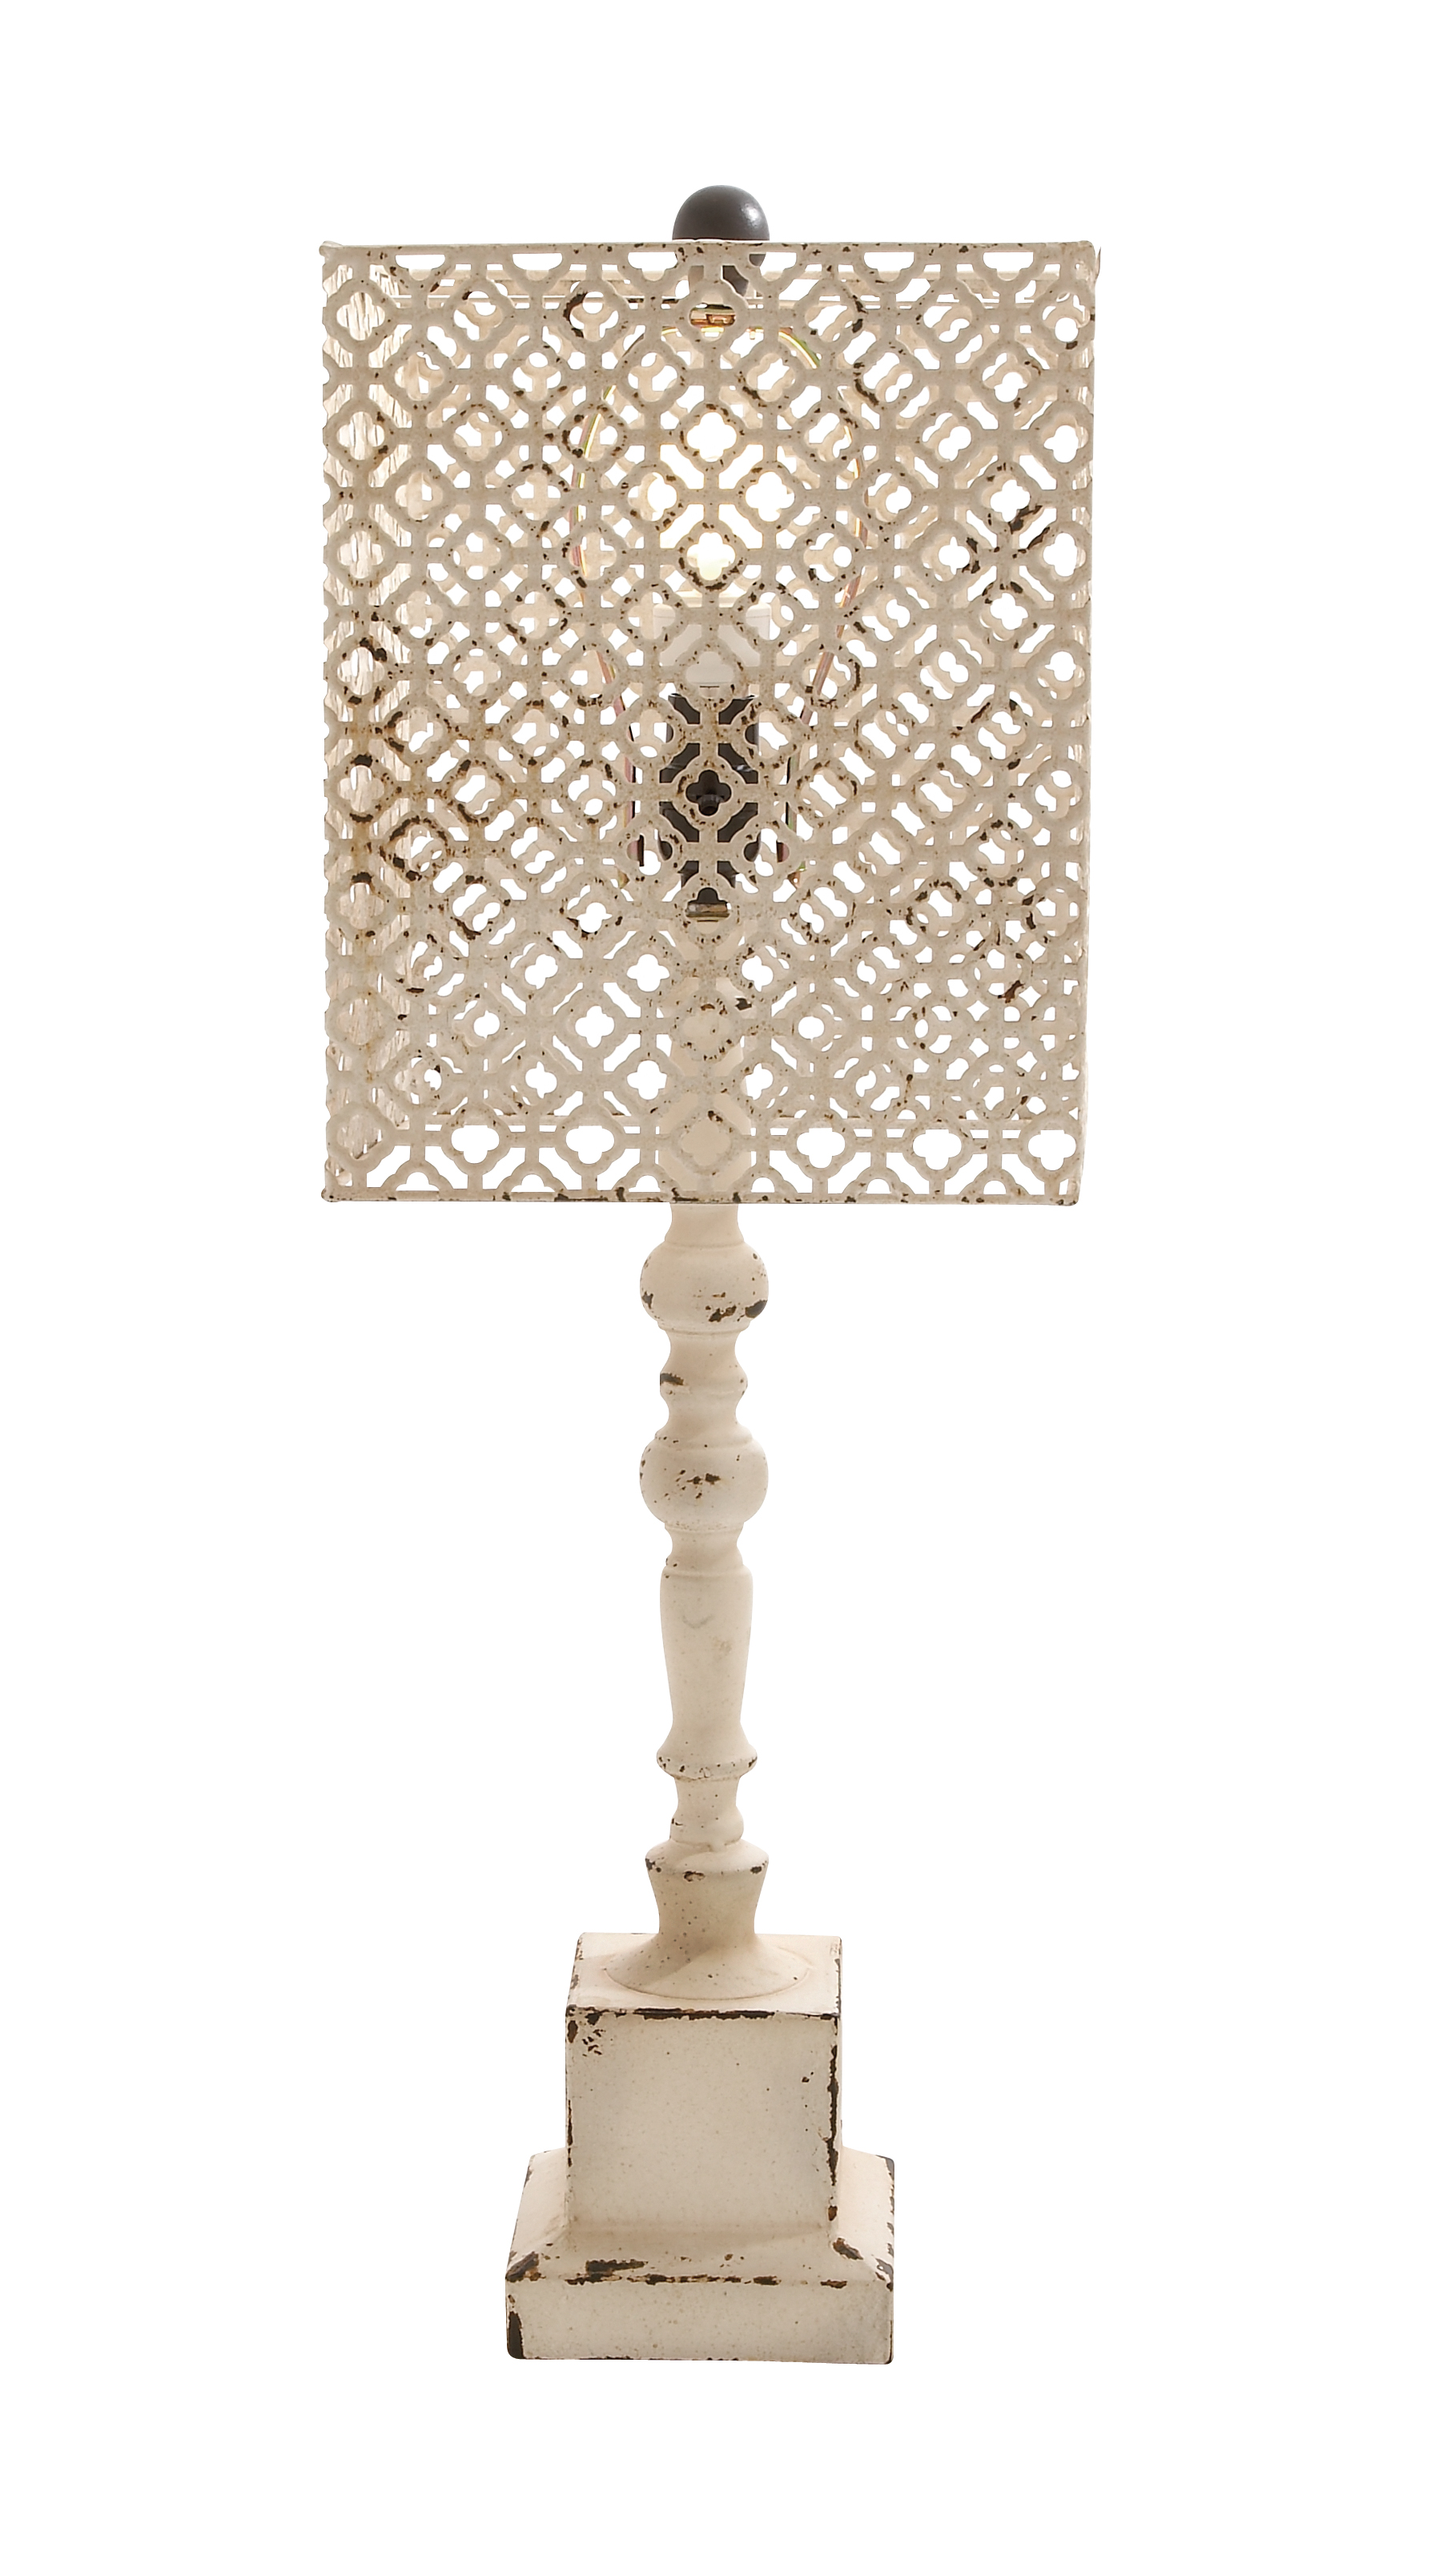 Decmode Eclectic 29 X 6 Inch Textured Iron And Wood Lattice Table